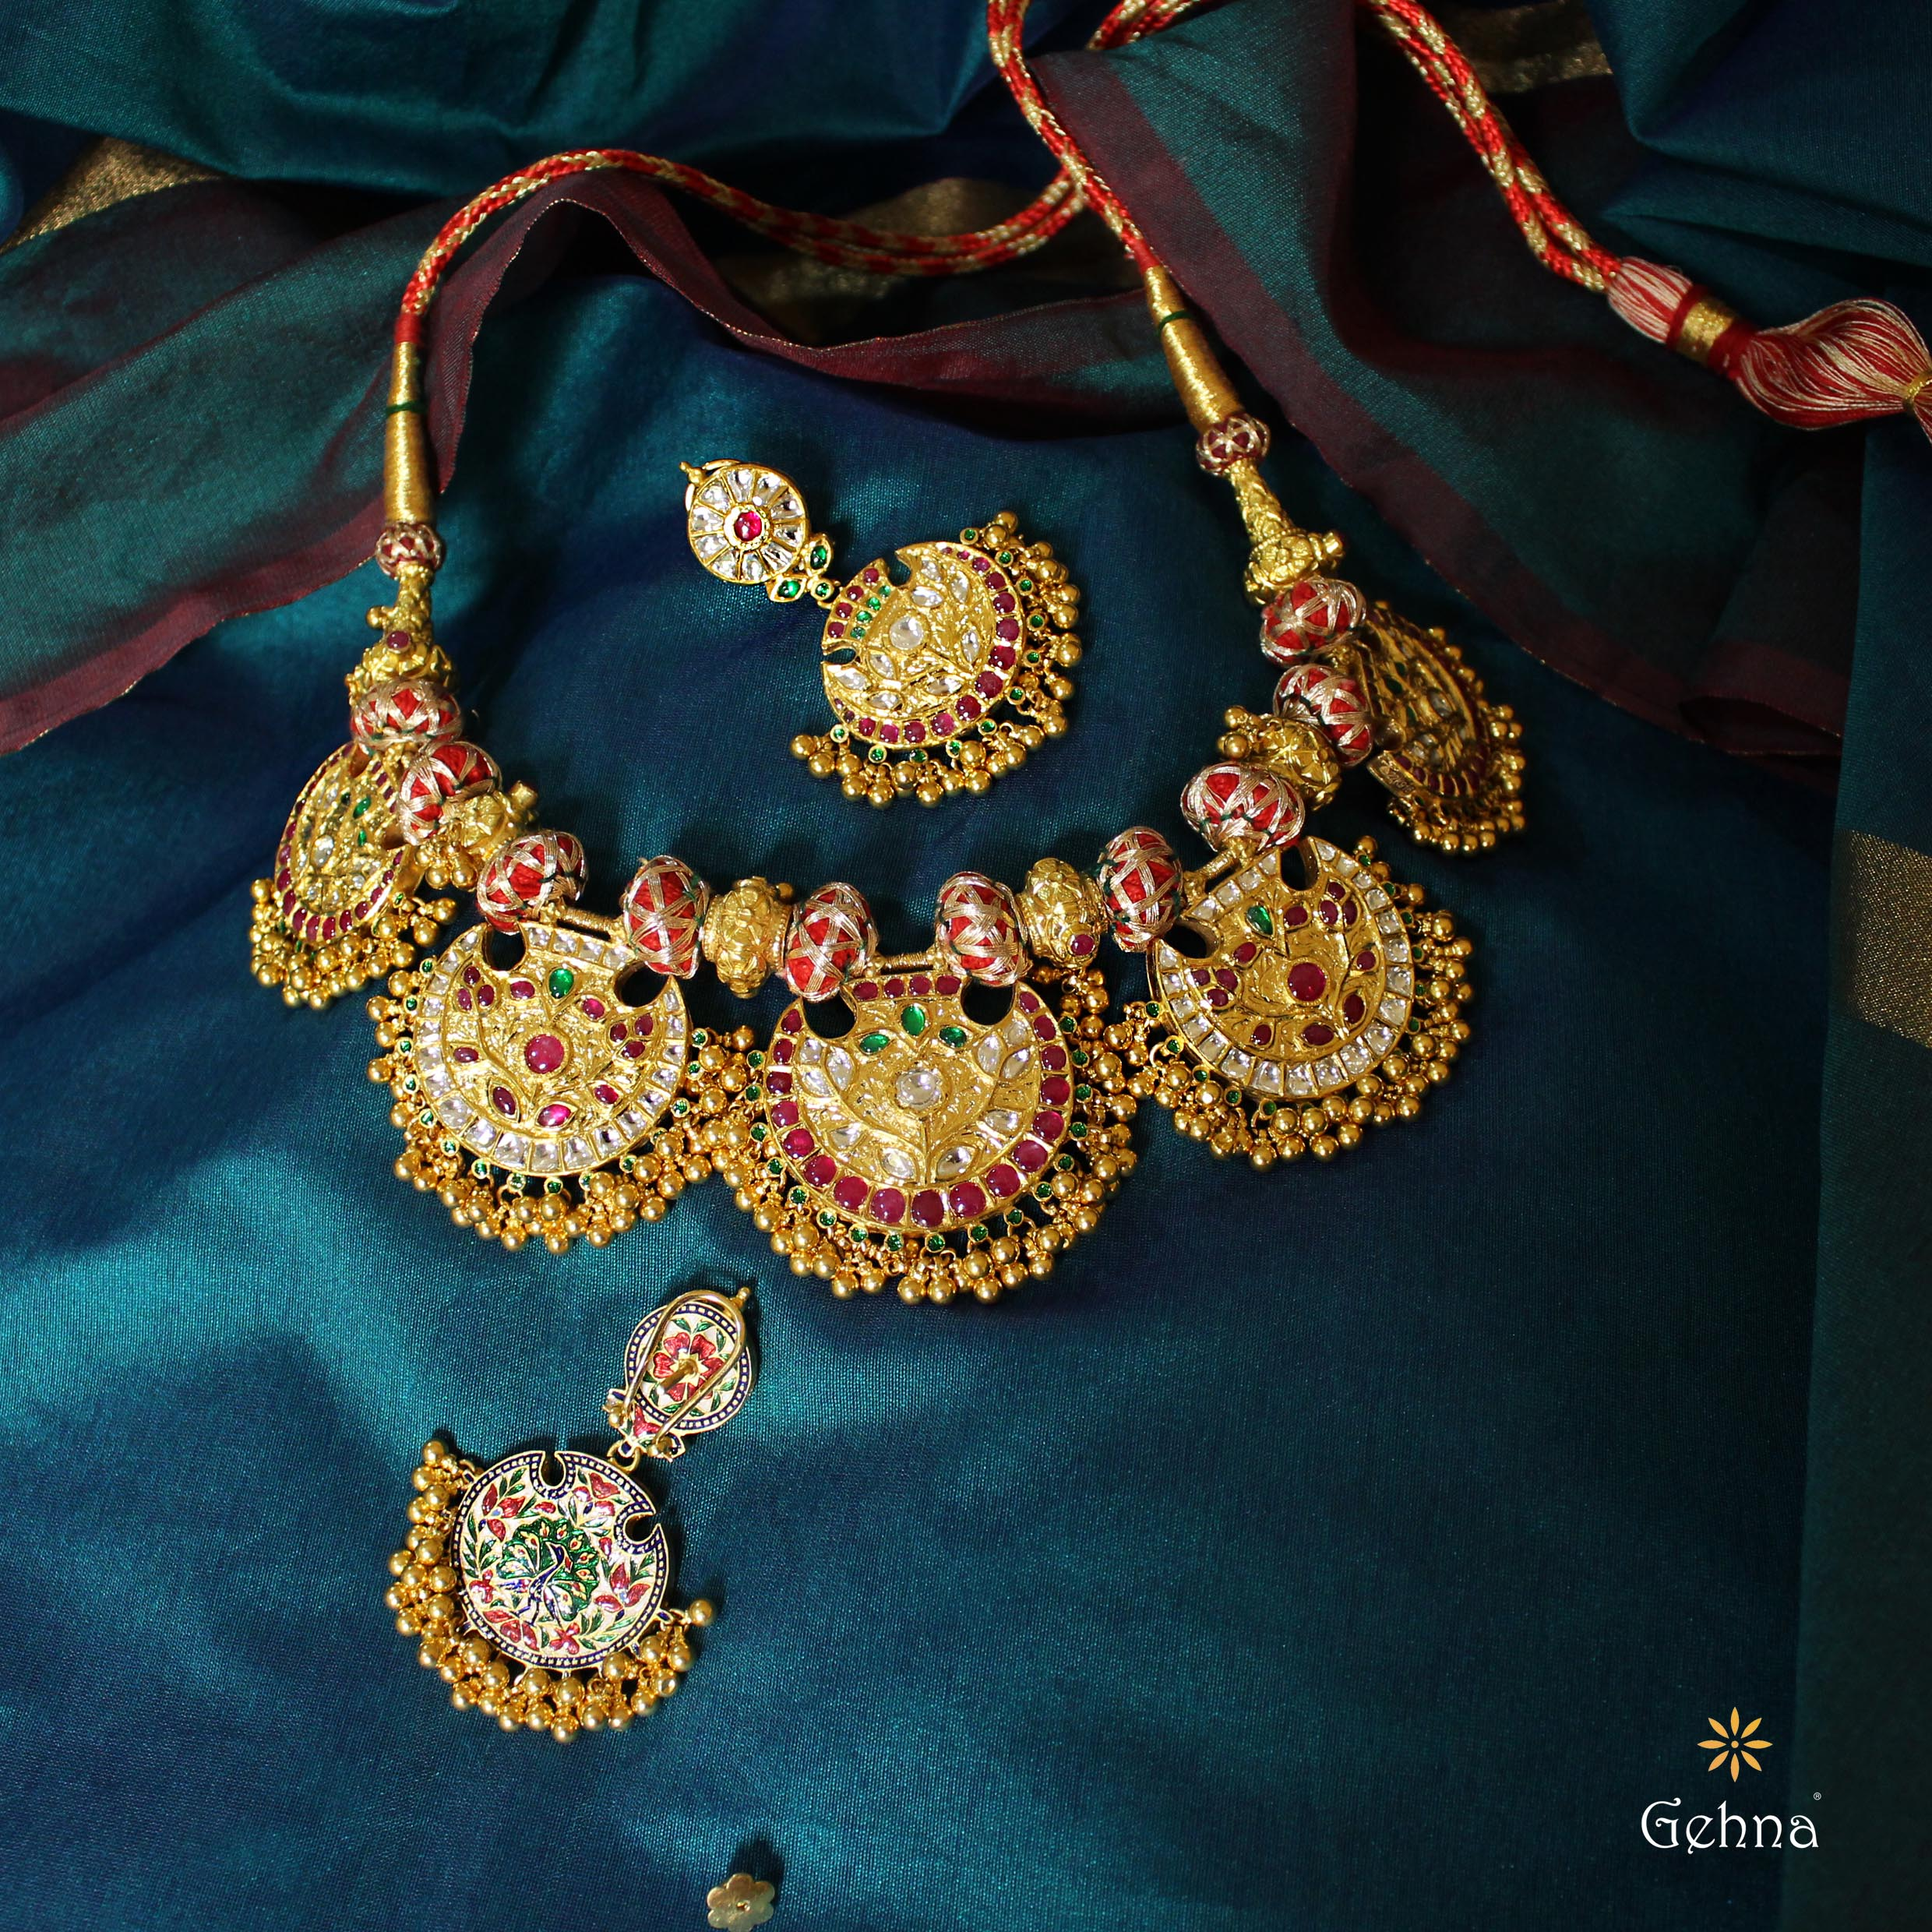 Gorgeous Gold Pankhi Necklace Set From Gehna India